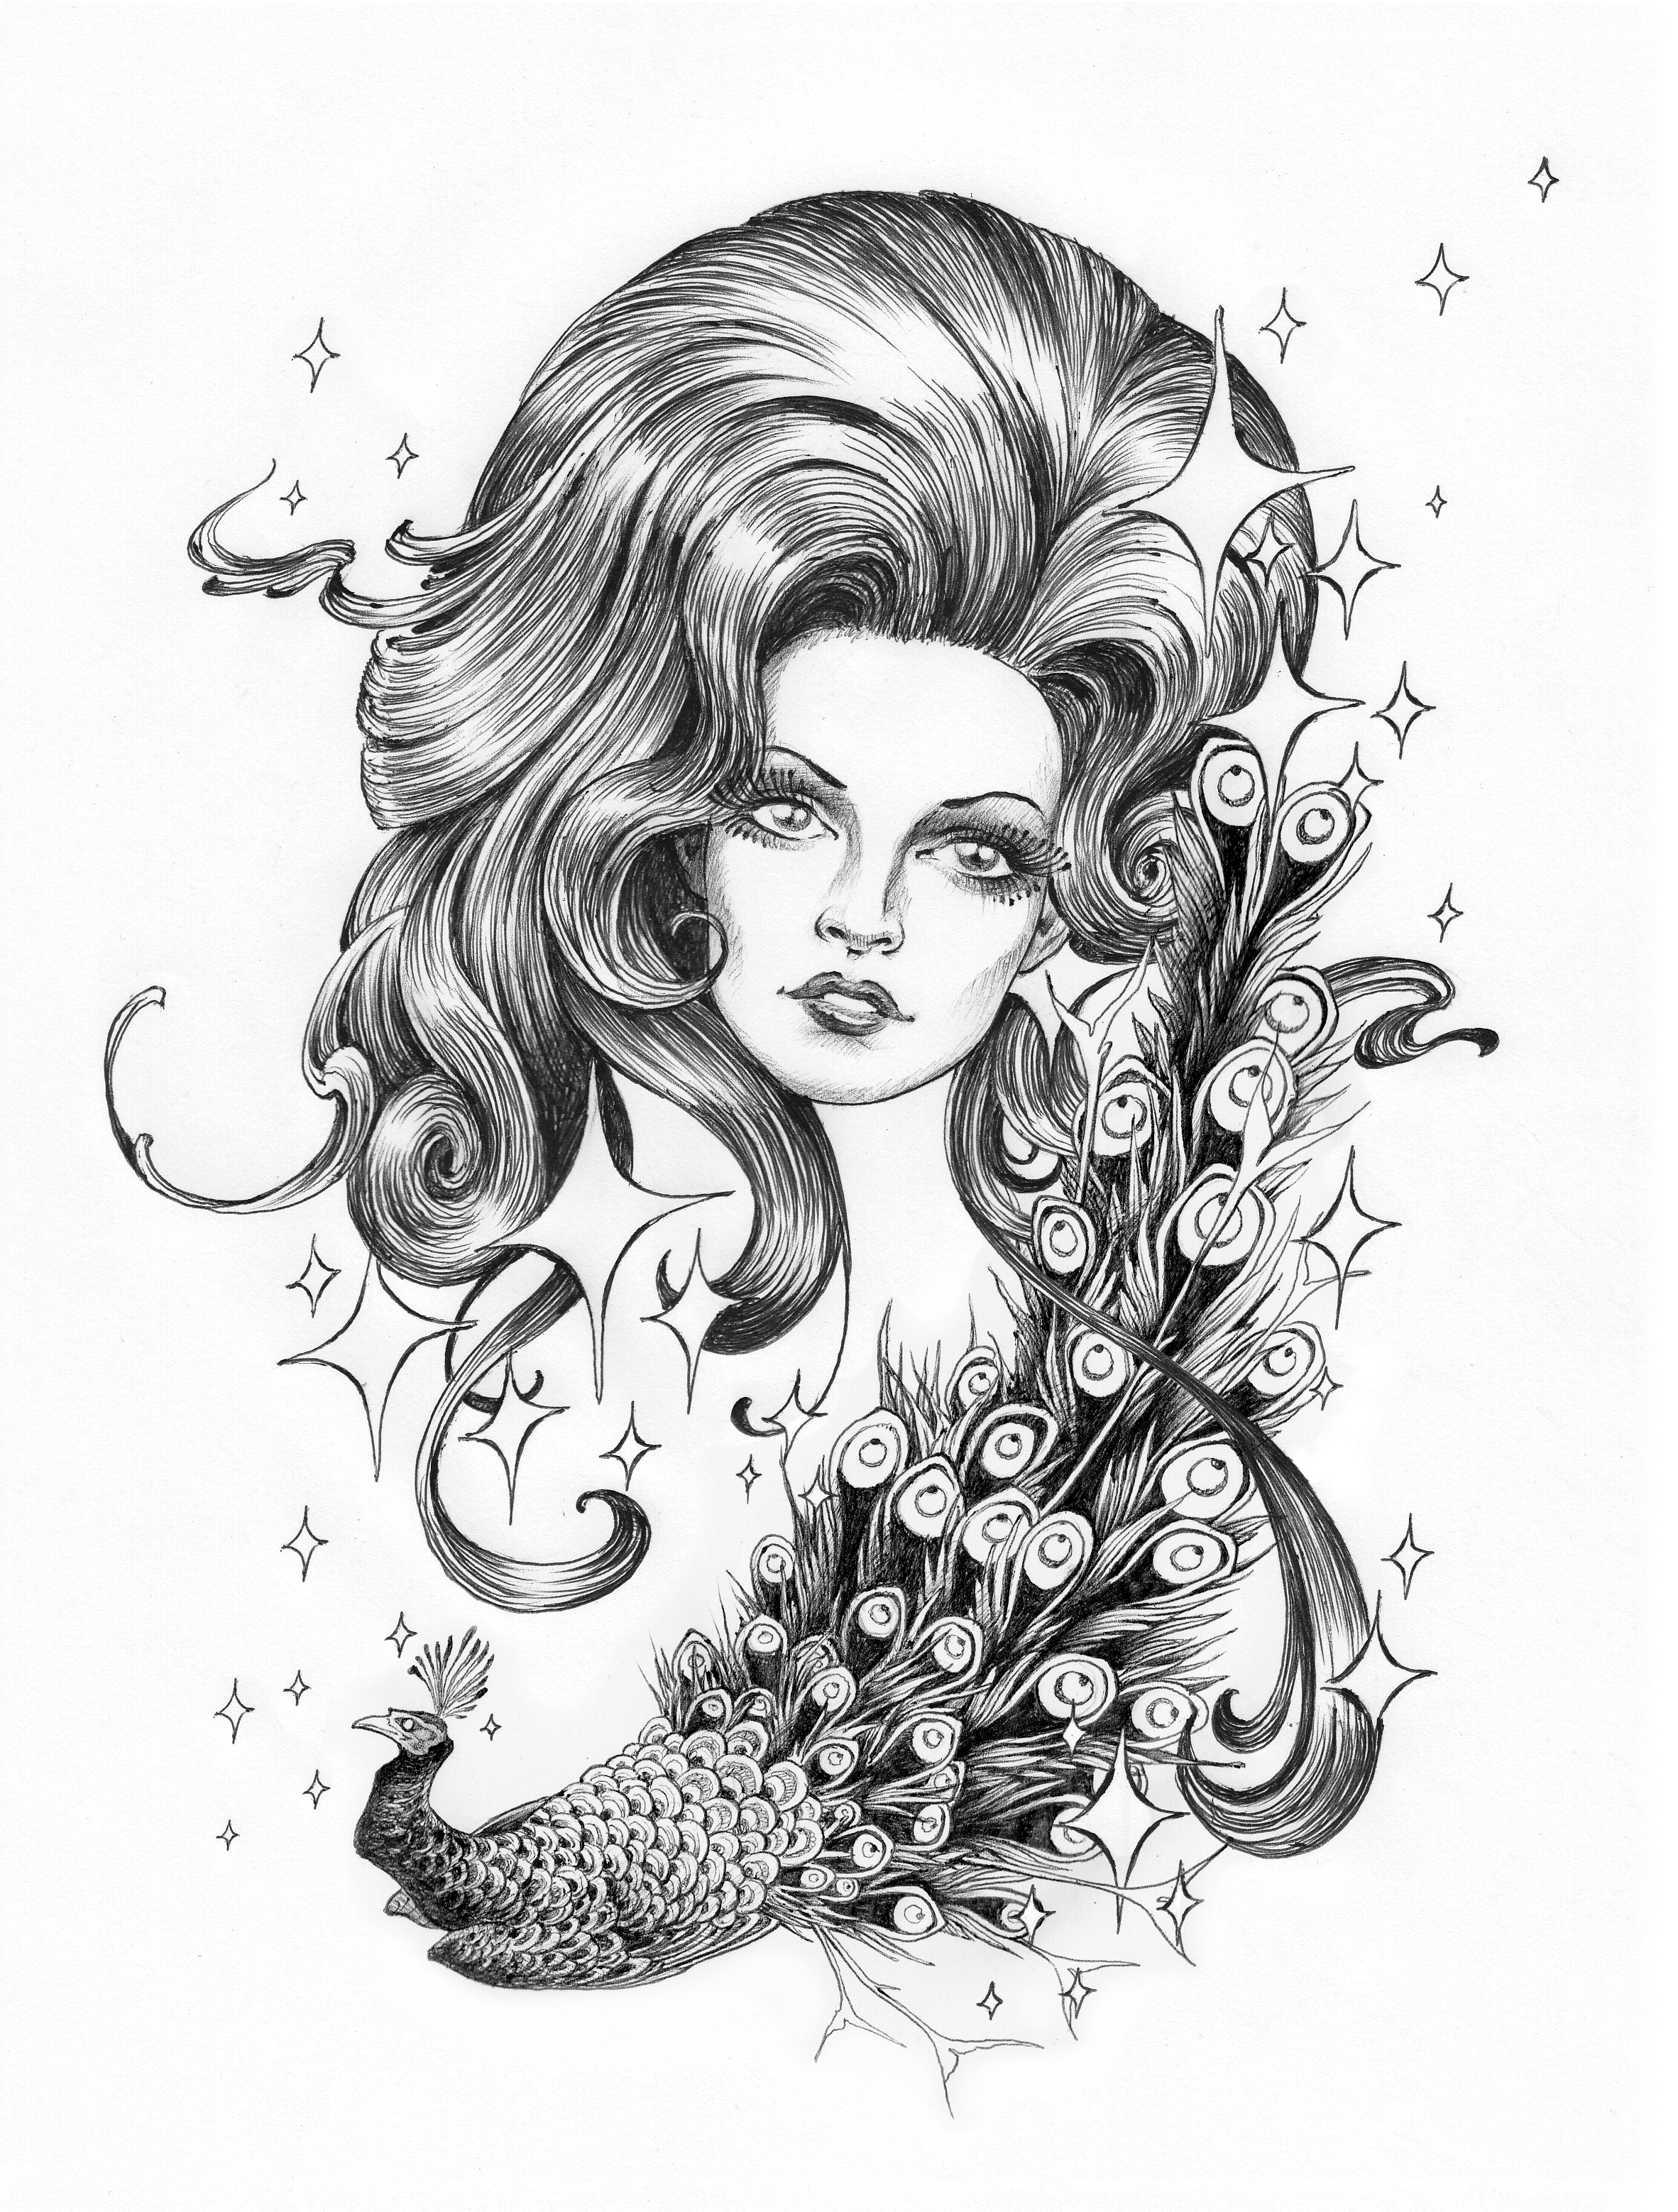 Big Hair.  2015 - ballpoint on paper.